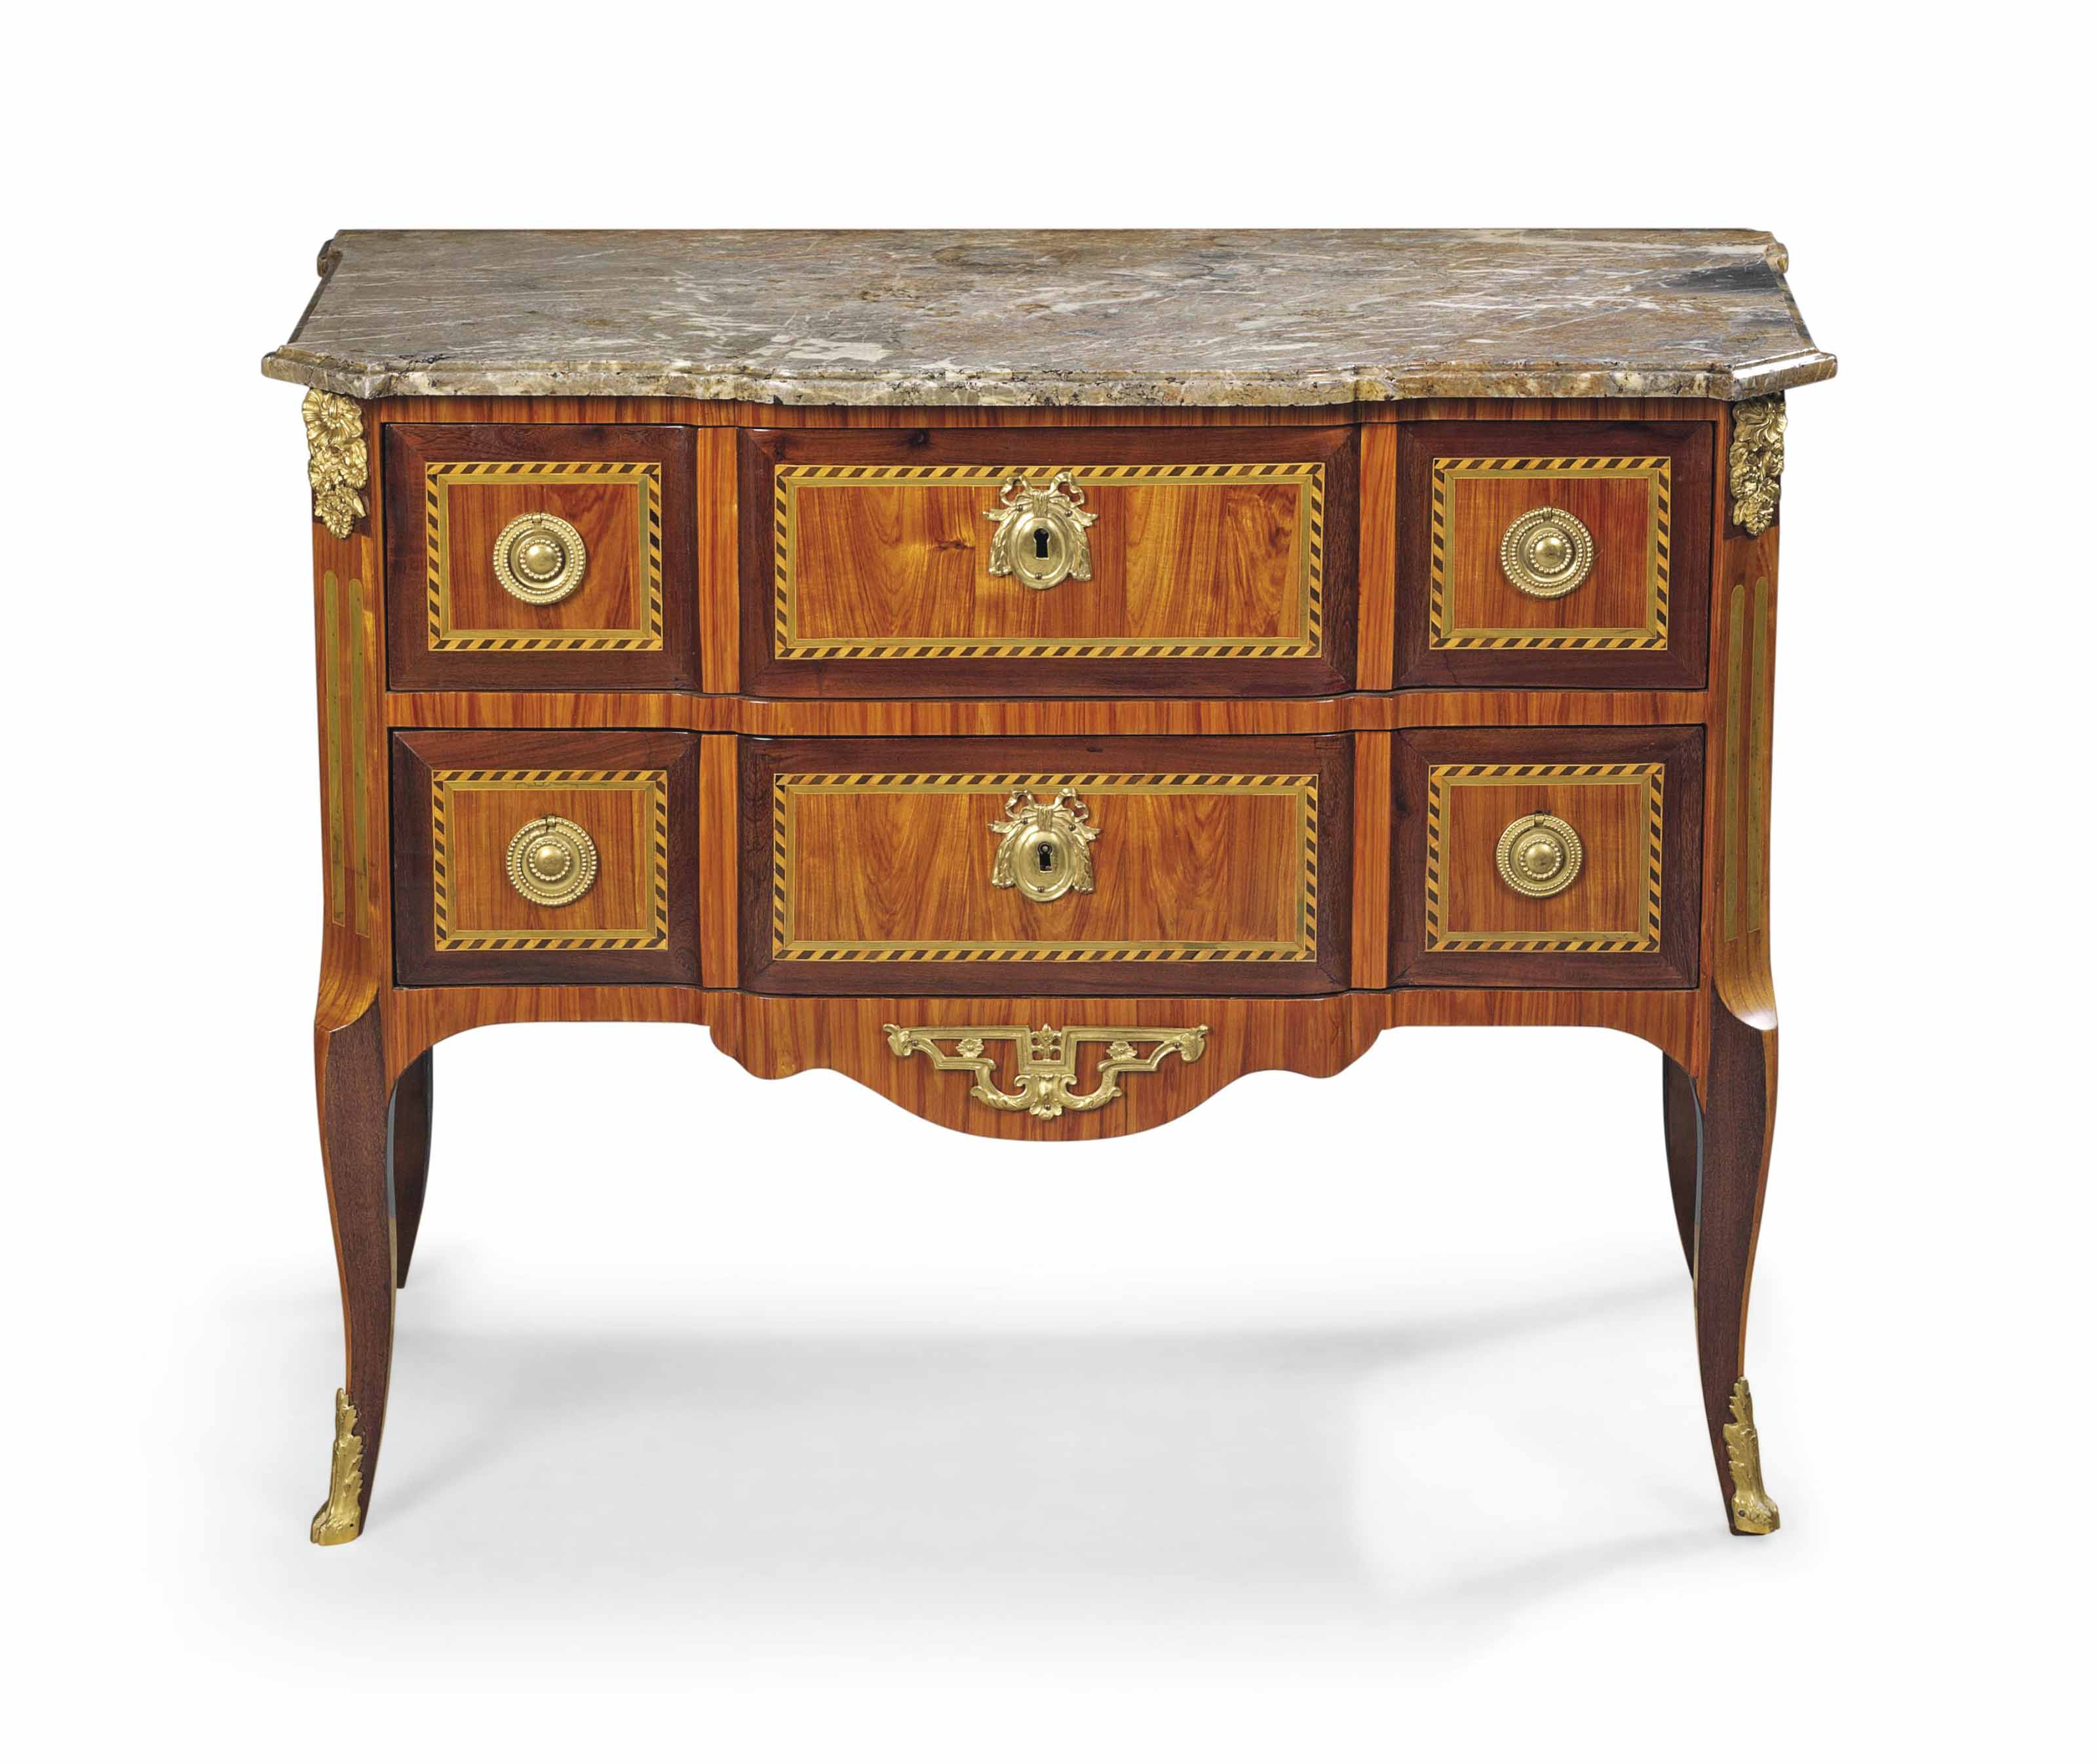 A LATE LOUIS XV ORMOLU-MOUNTED AMARANTH, TULIPWOOD AND MARQUETRY COMMODE